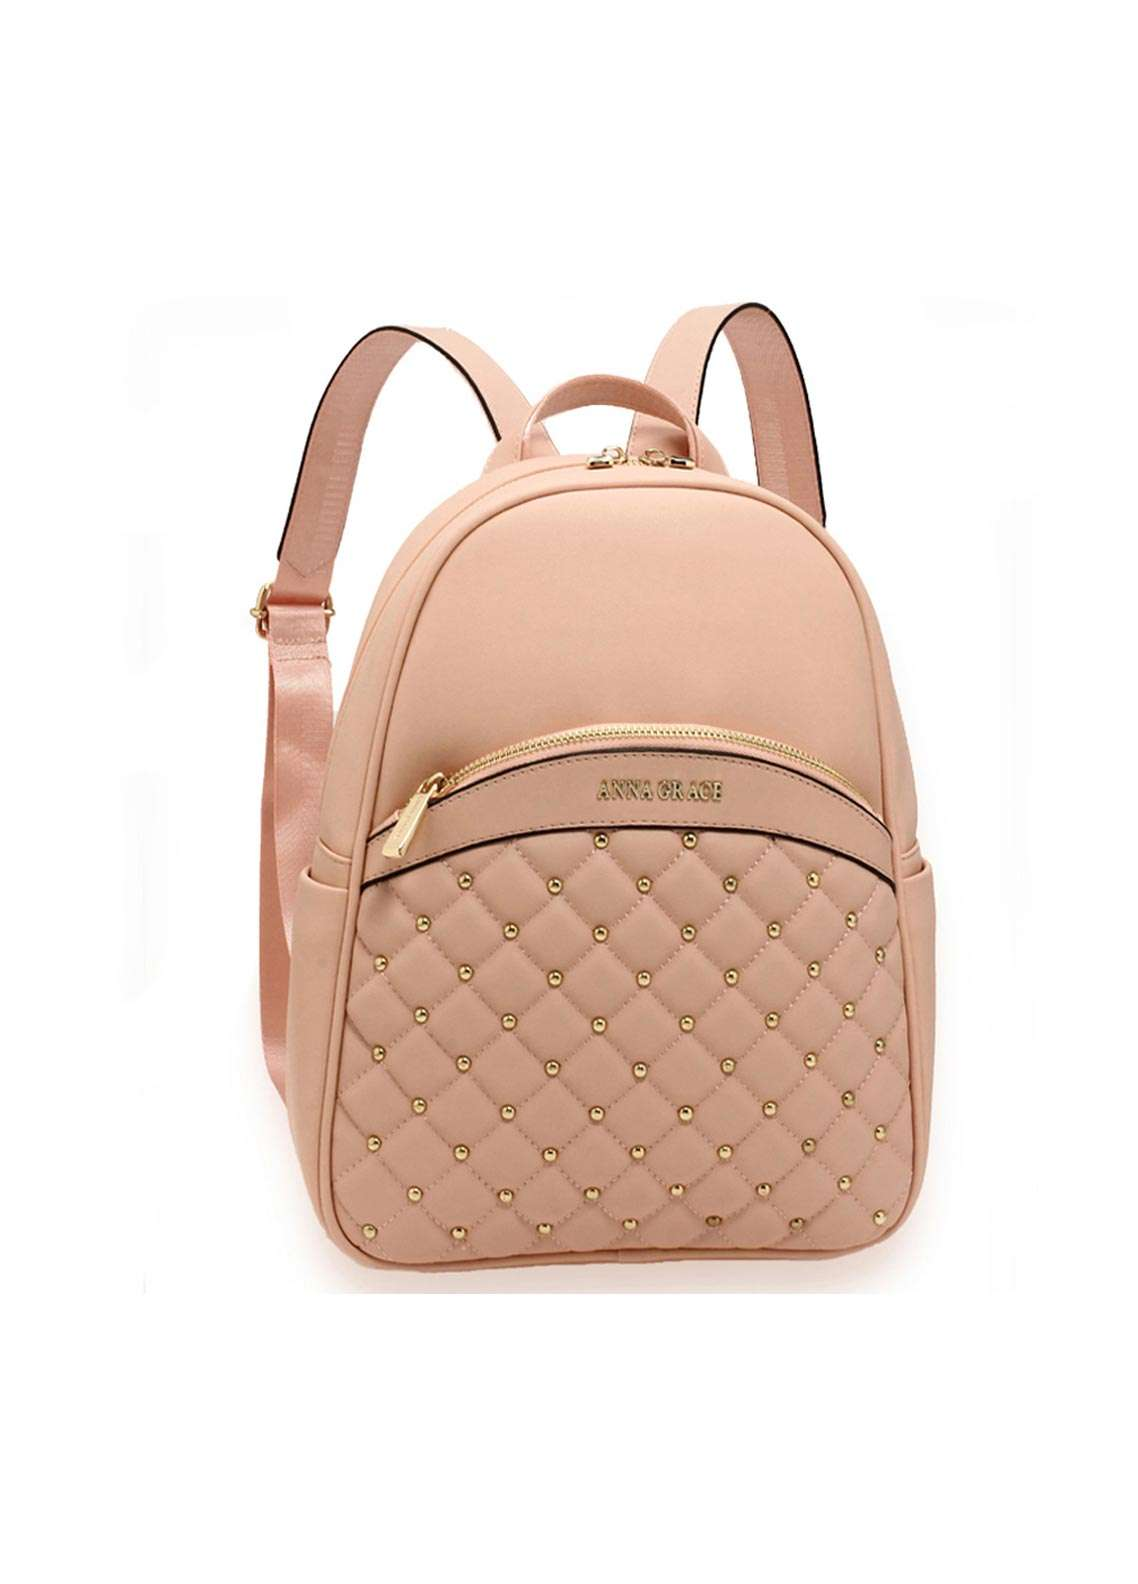 Anna Grace London Faux Leather Backpack Bags  for Women  Pink with Smooth Texture